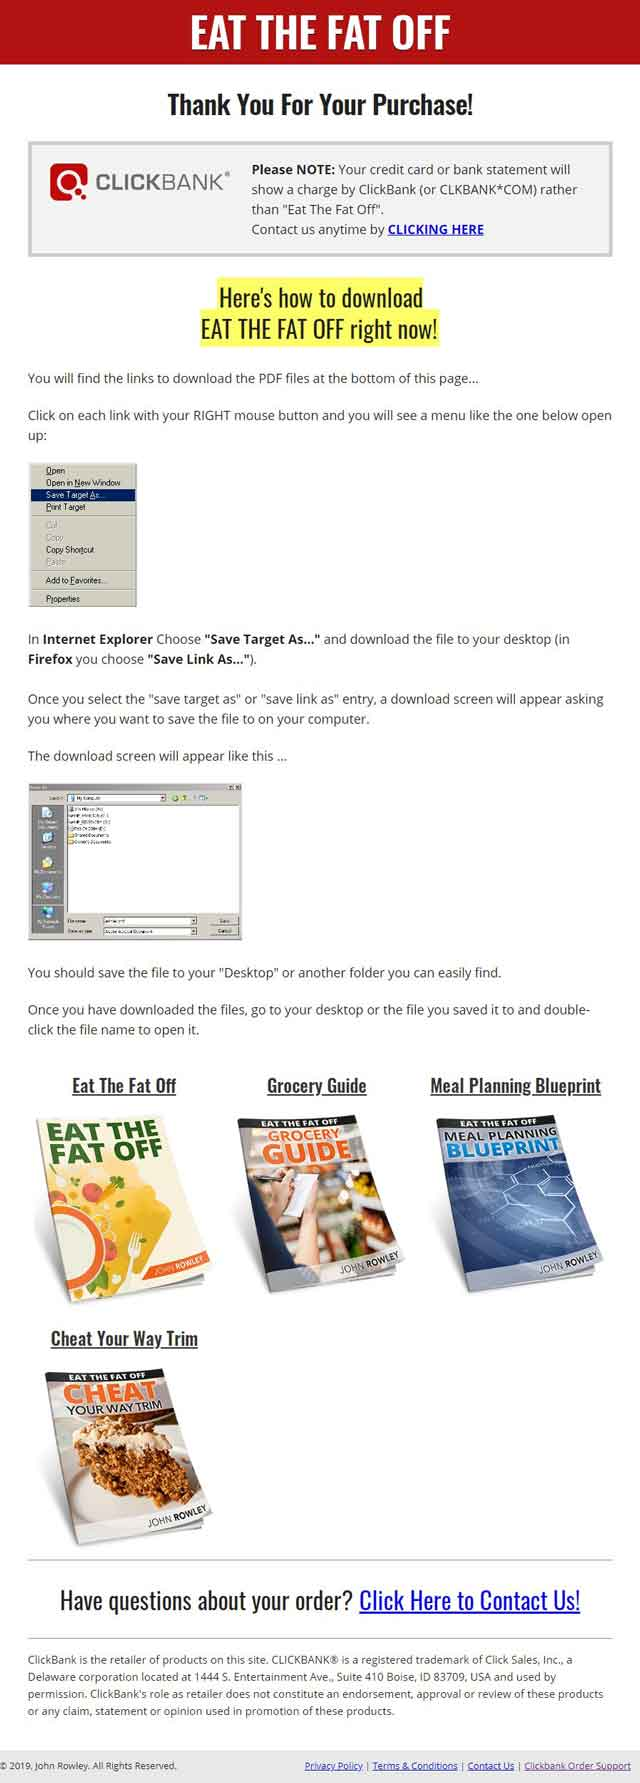 Eat The Fat Off Review: What's the 21-Day Regime Like? Does it Work? Free Download PDF